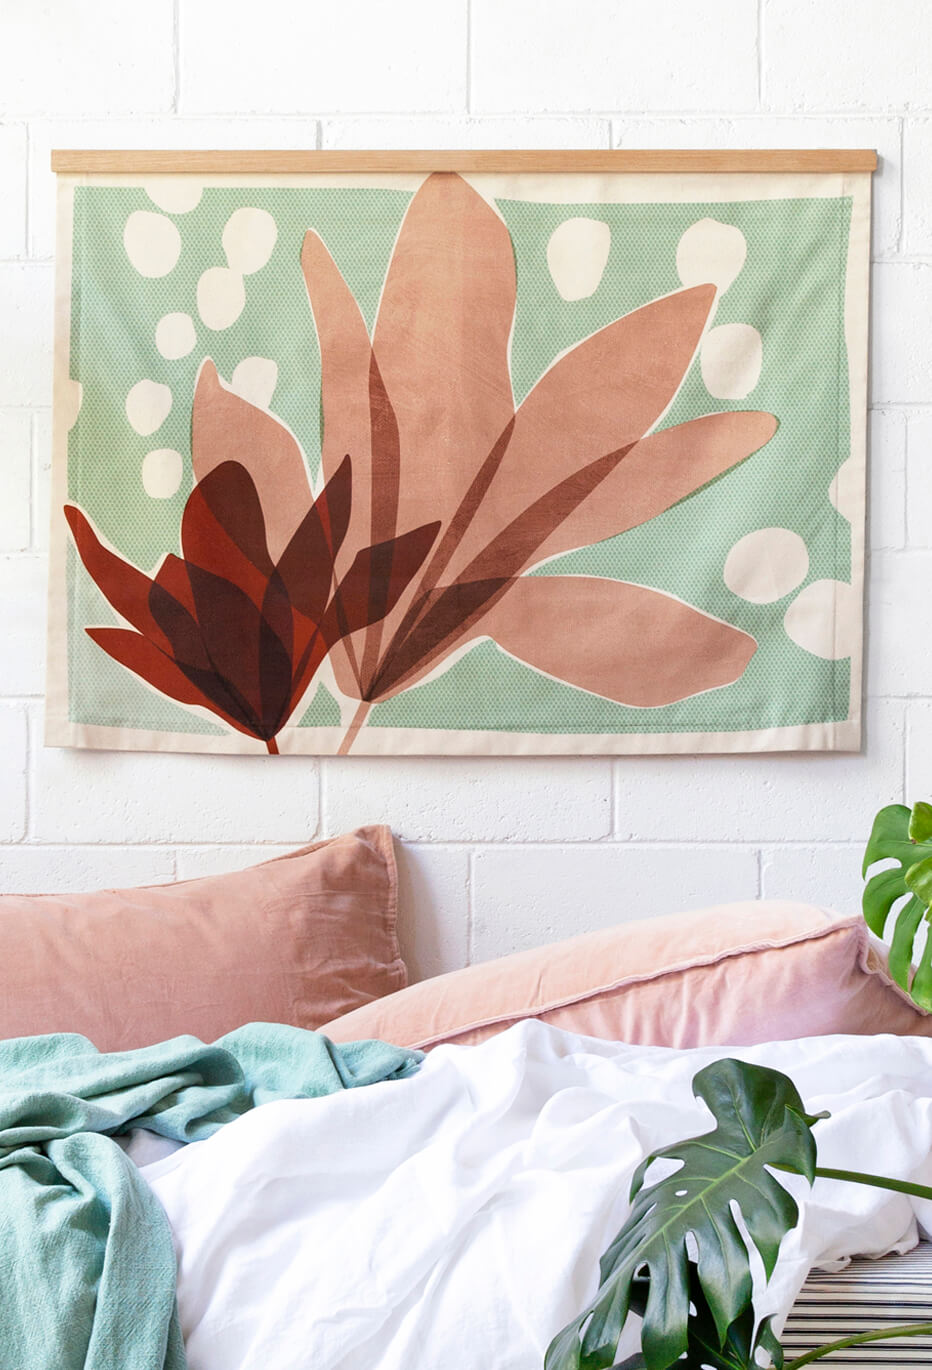 Magnolia - Fabric Wall Hanging - $295 |My House Loves